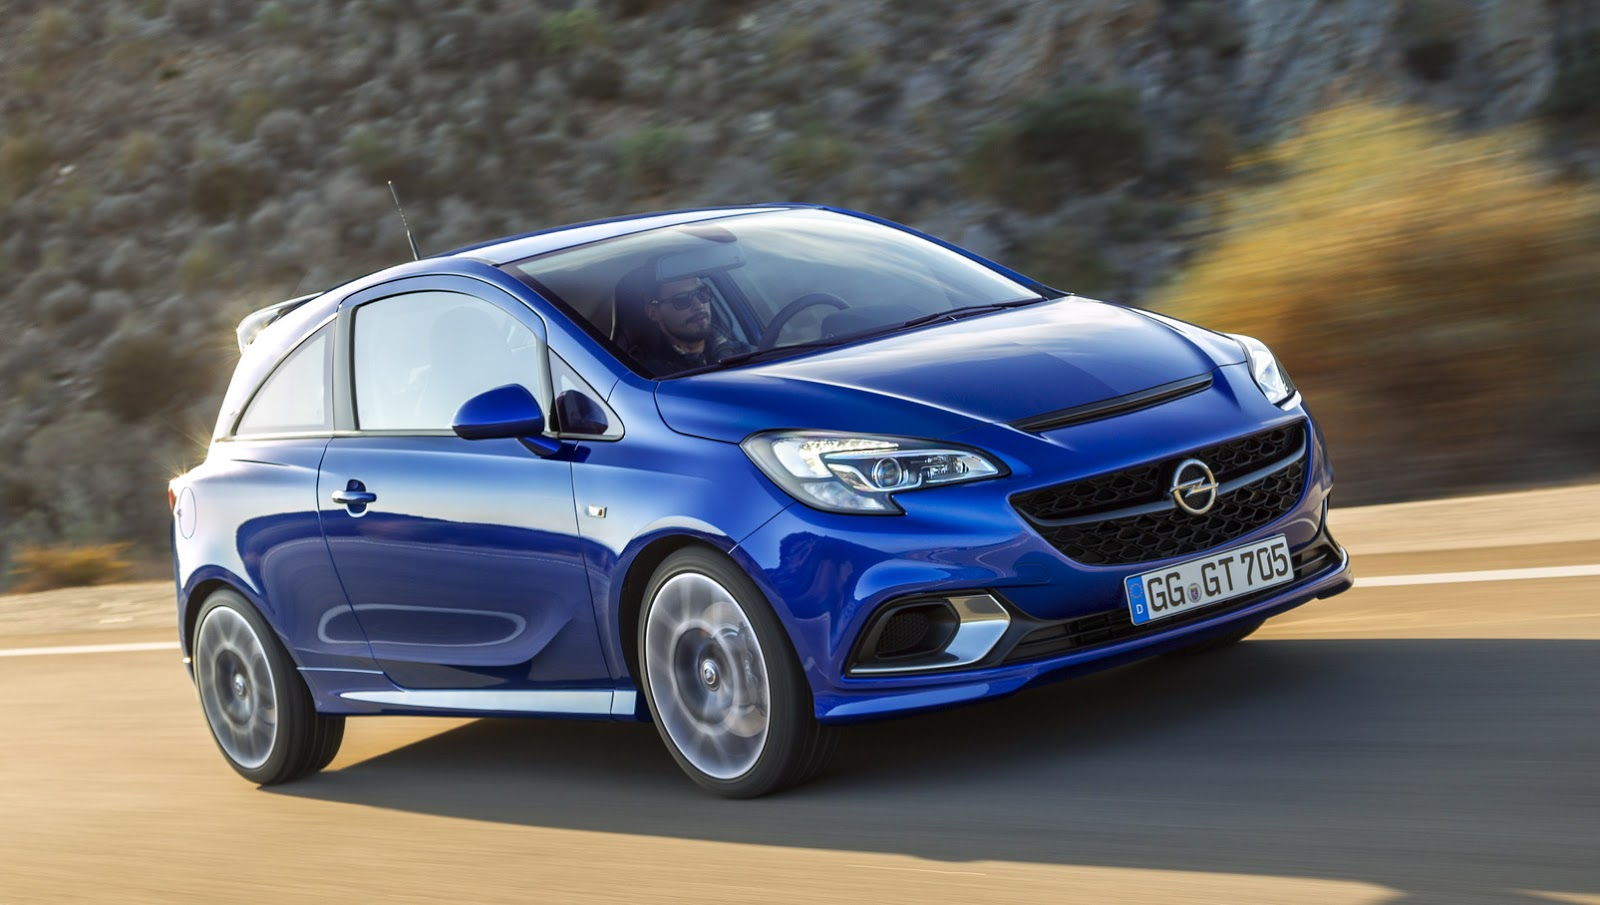 opel vauxhall to preview new onstar connectivity system in geneva carscoops. Black Bedroom Furniture Sets. Home Design Ideas